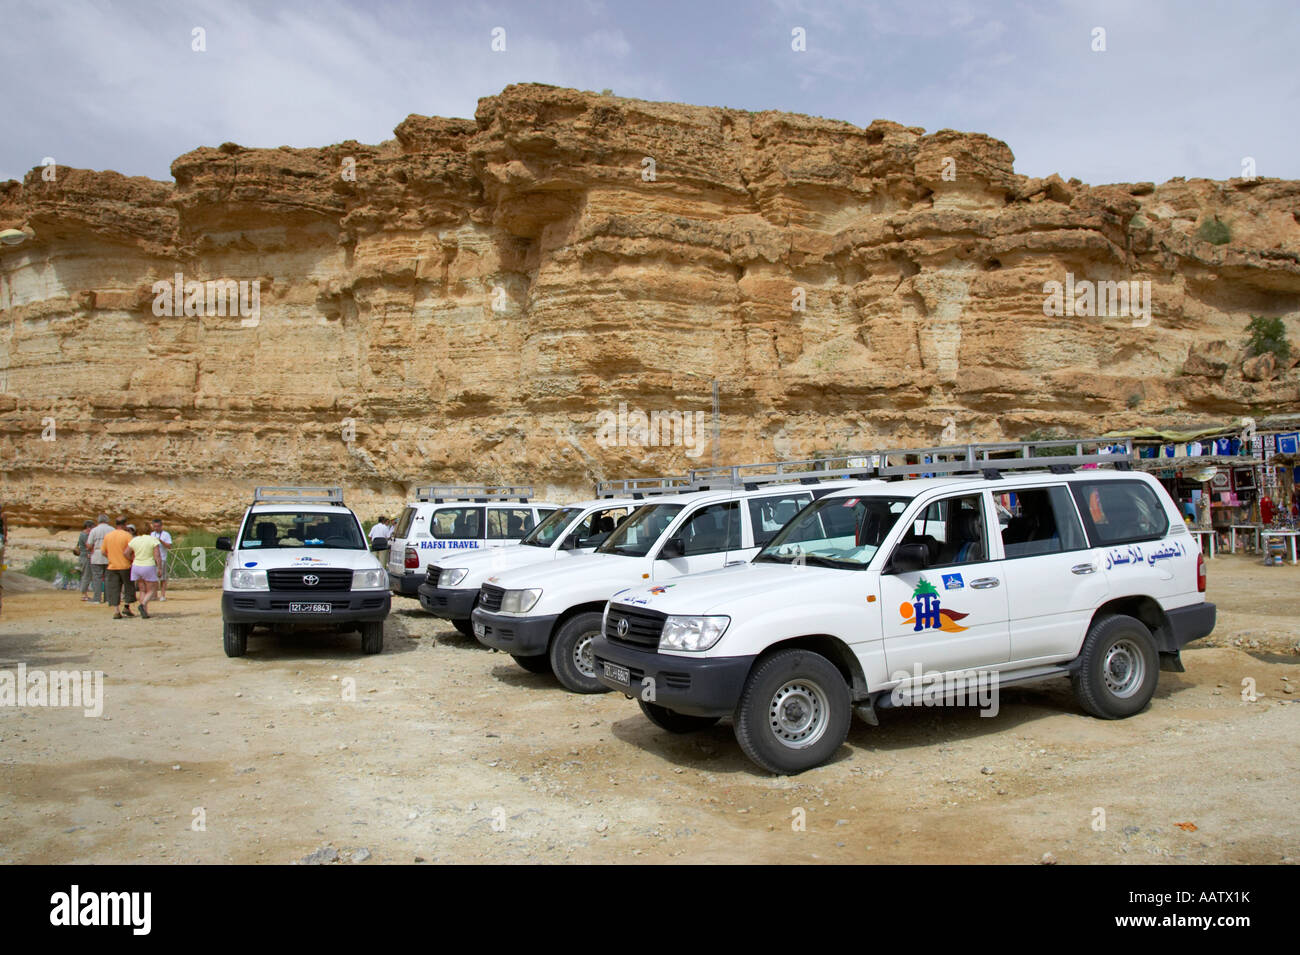 off road tourist vehicles parked in the canyon at tamerza waterfall tourist parking area tunisia - Stock Image